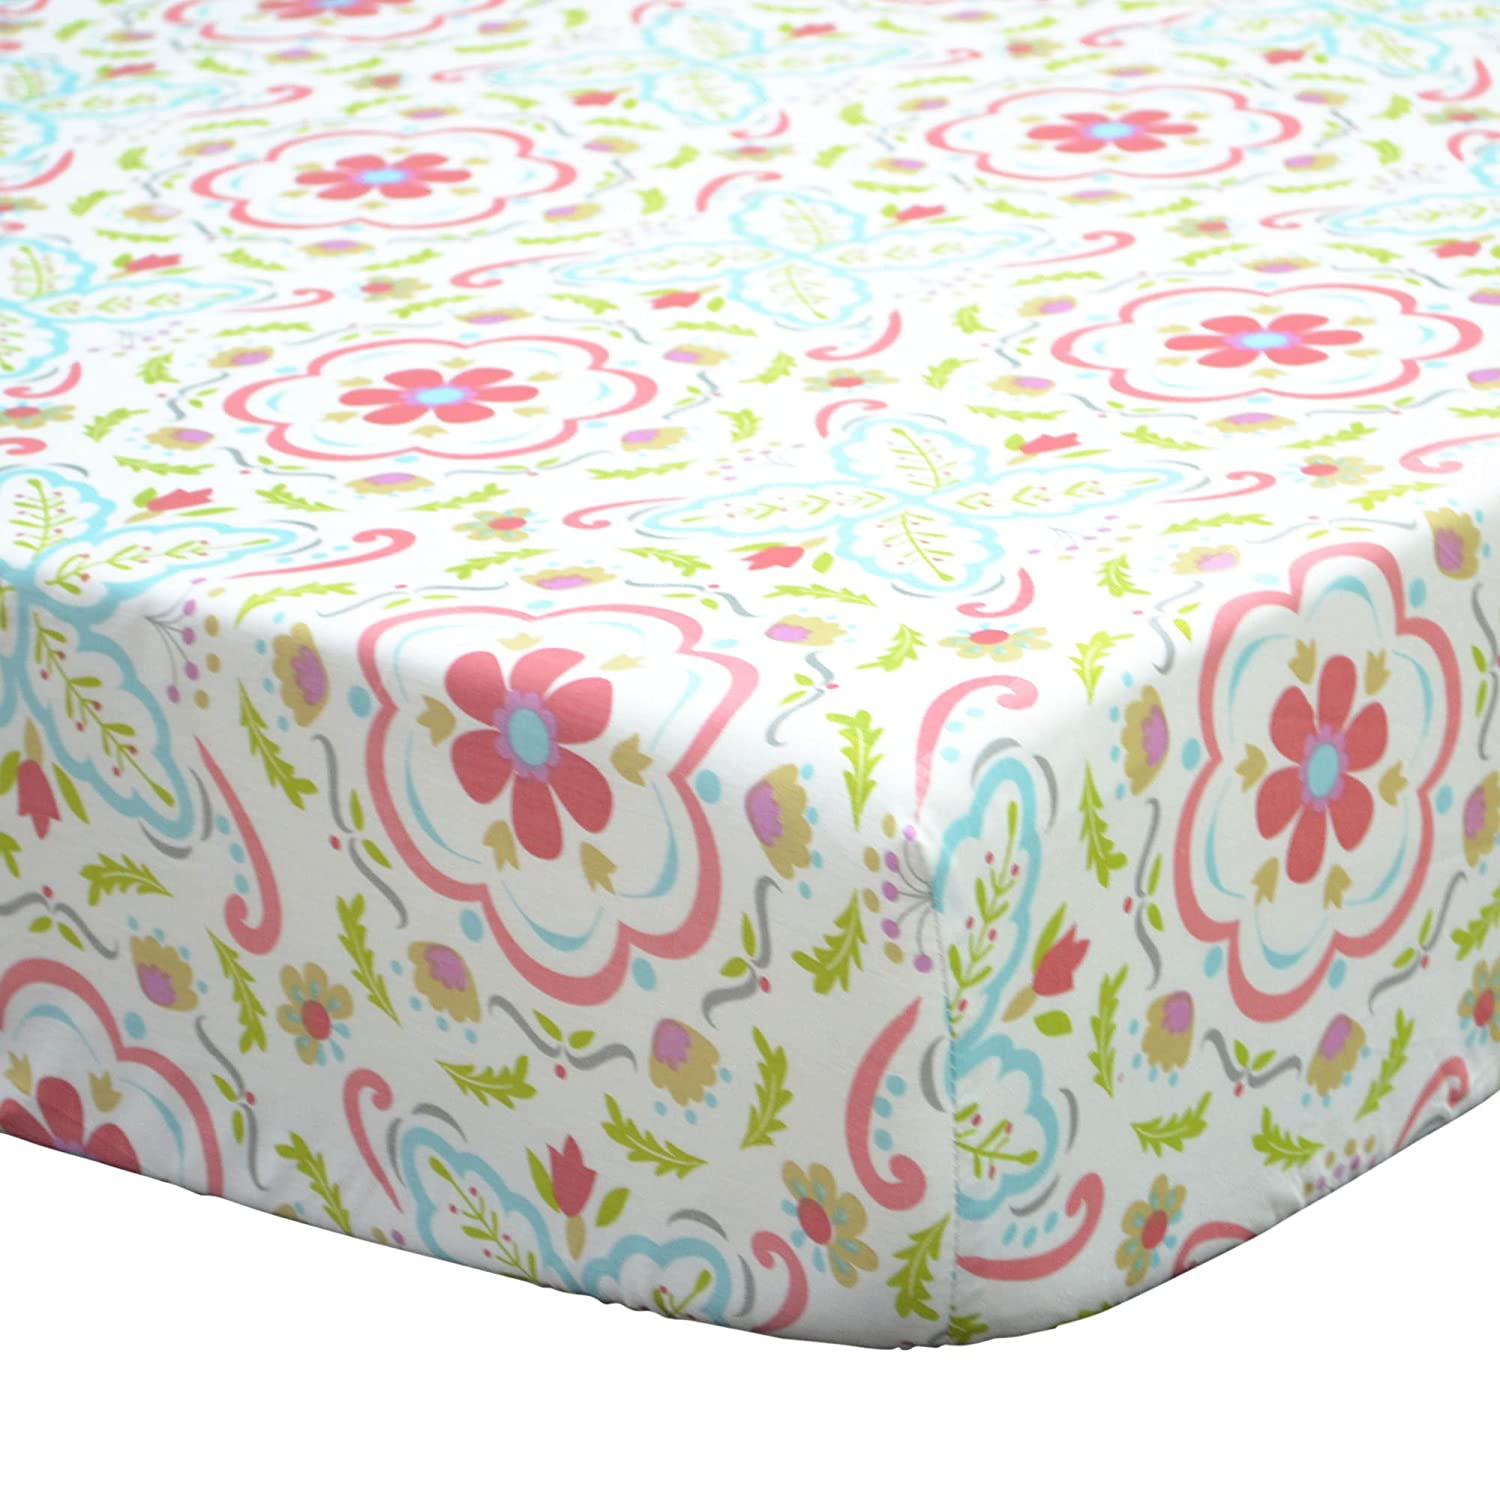 Gia Floral Fitted Crib Sheet - Coral Pink, Aqua, Green Damask - 100% Cotton